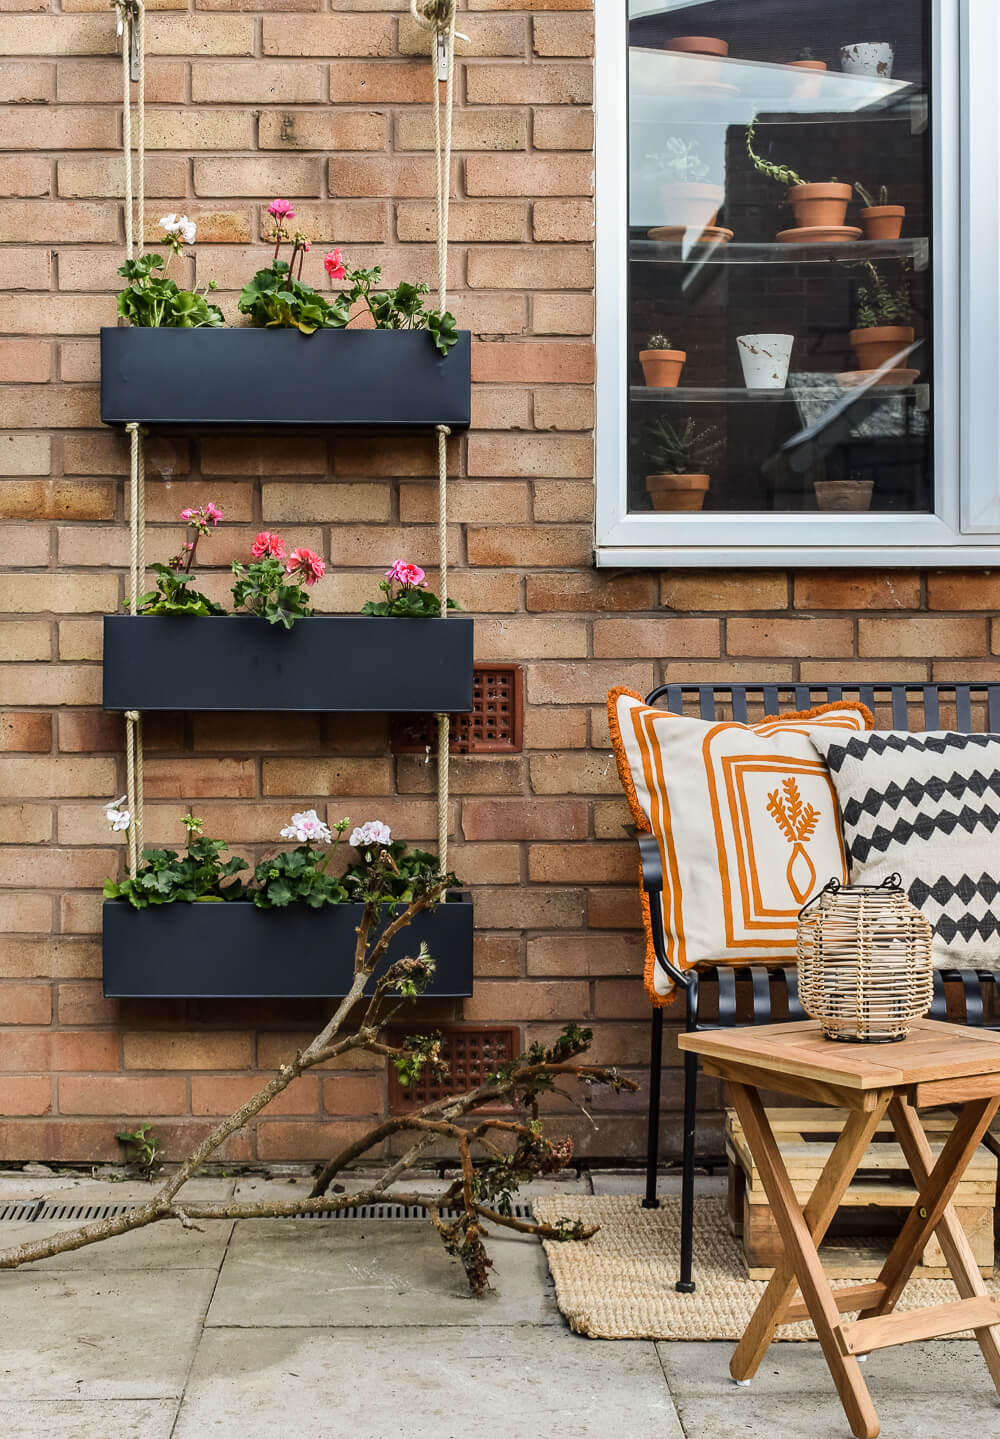 Black outdoor hanging planter against brick wall next to metal bench